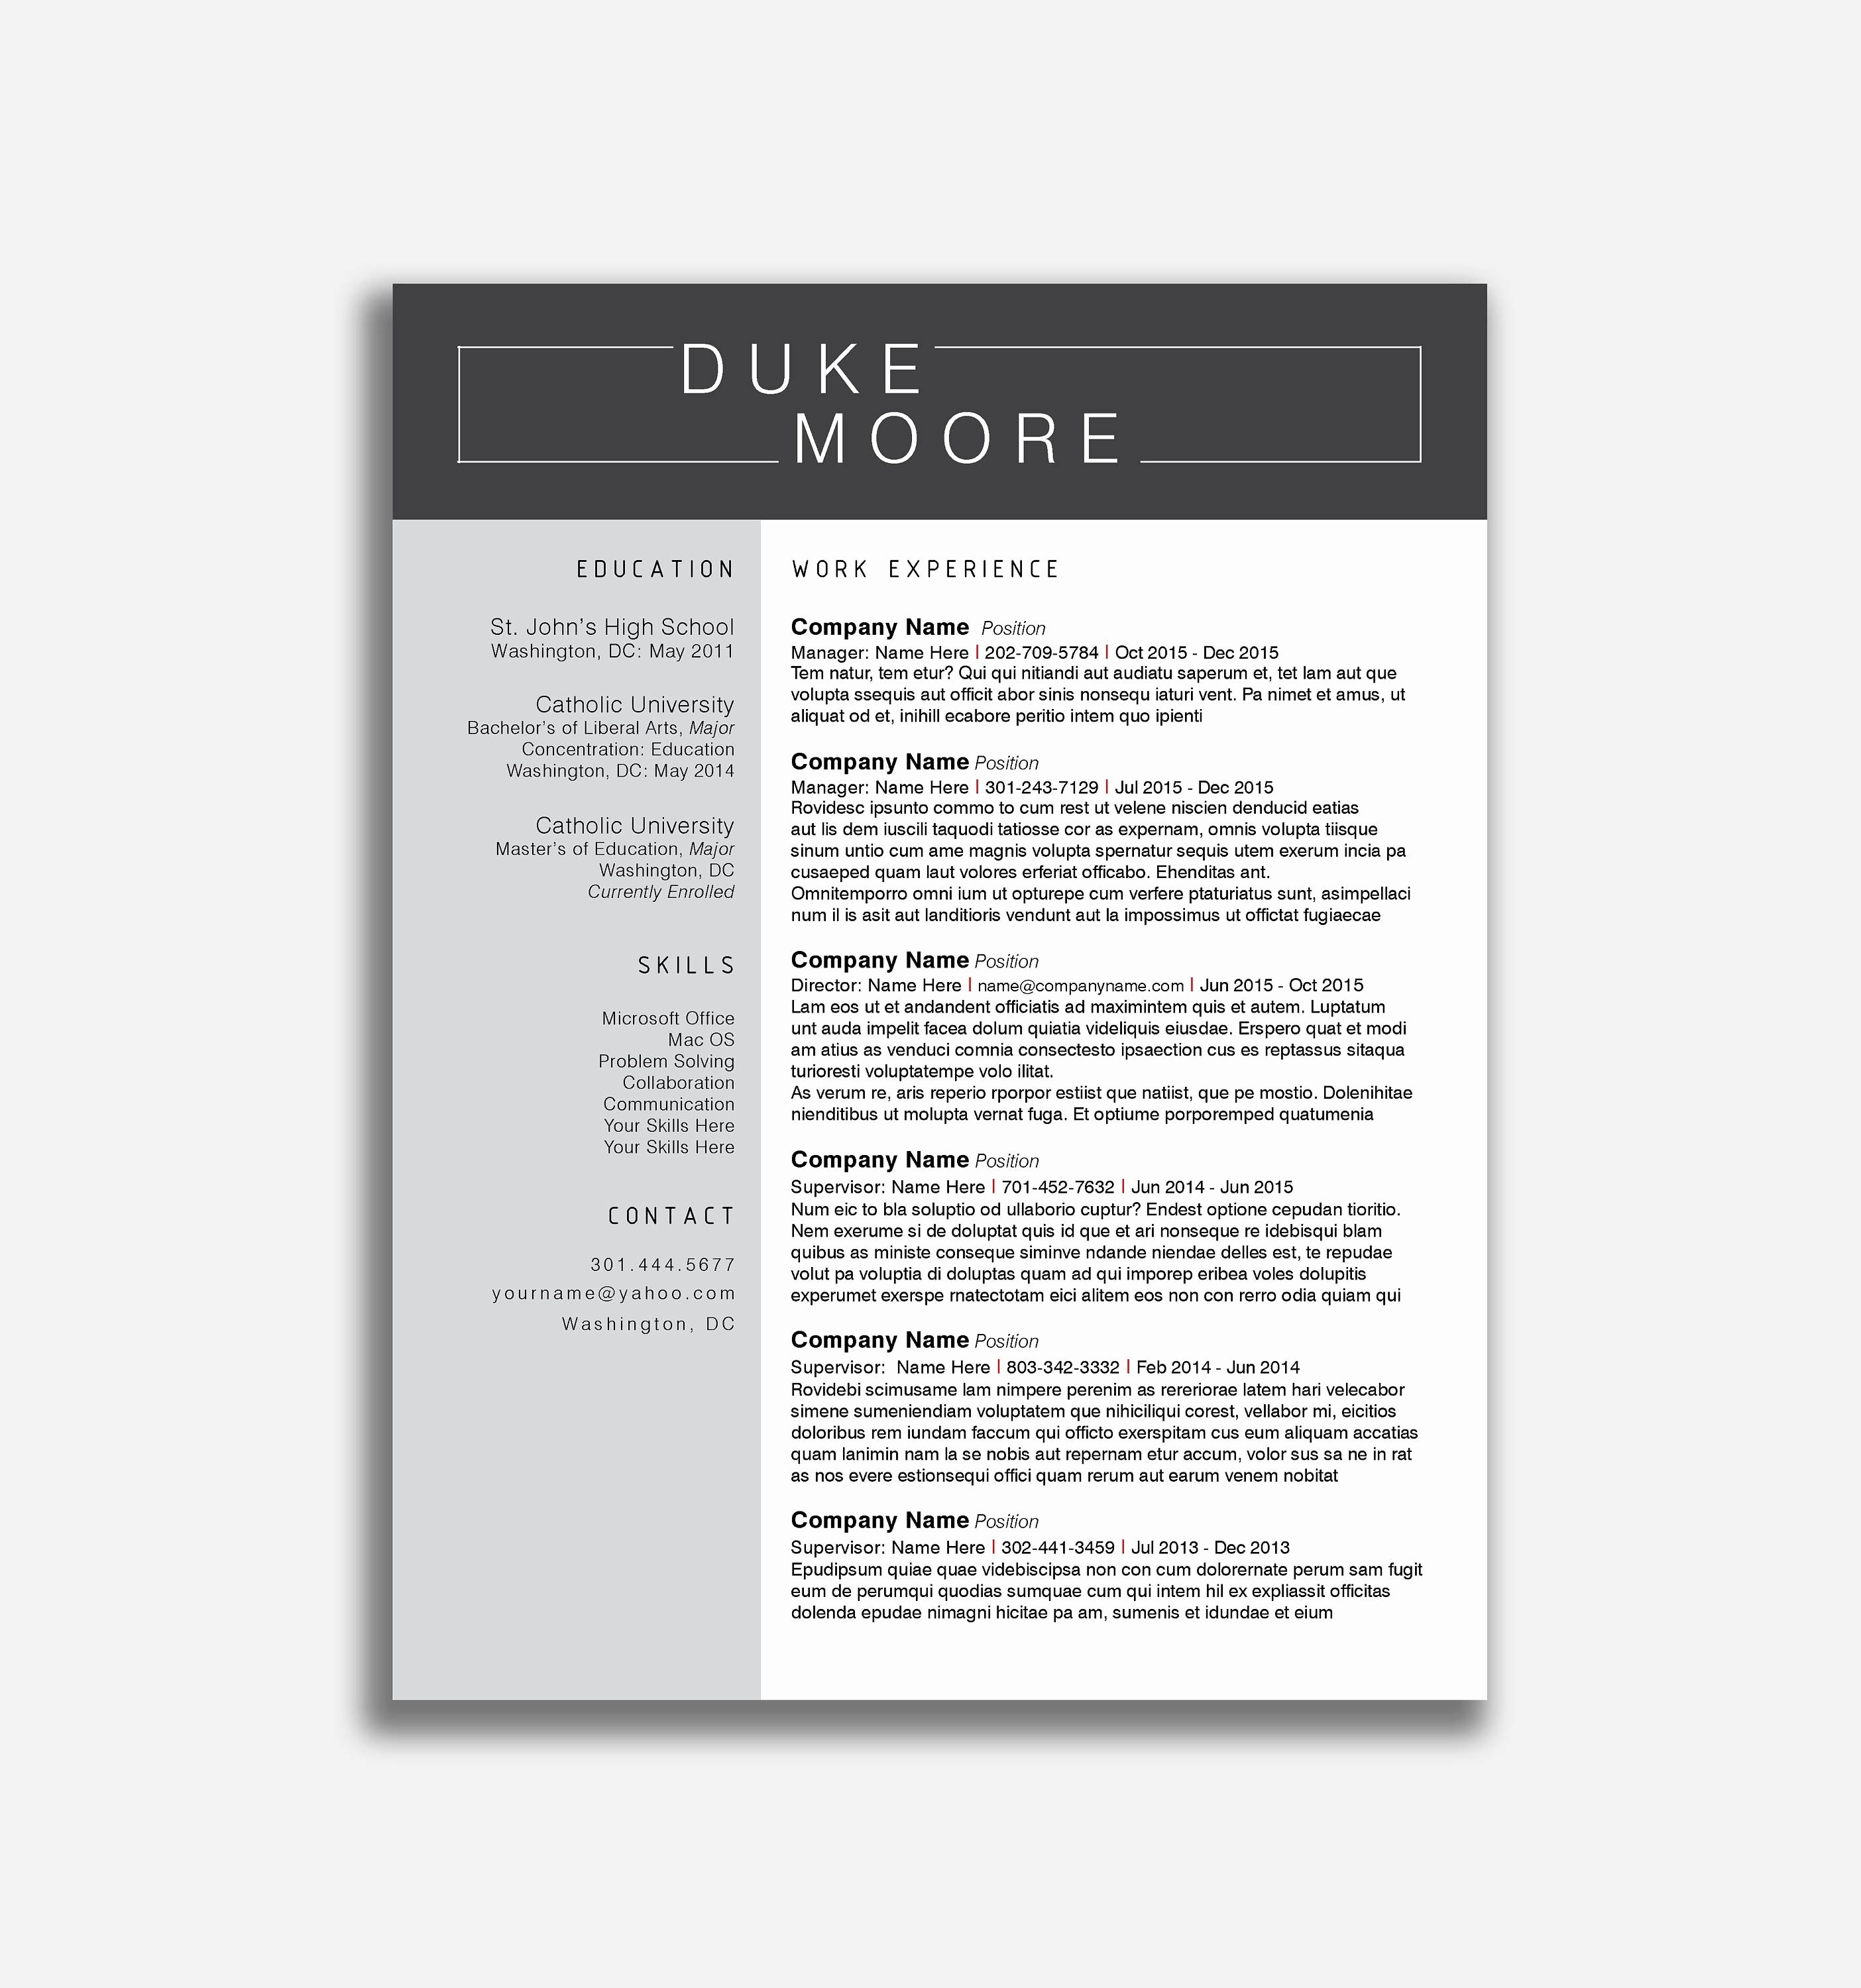 College Student Resume Template Microsoft Word - Cool Resume Templates for Word Awesome Free Word Templates Resume